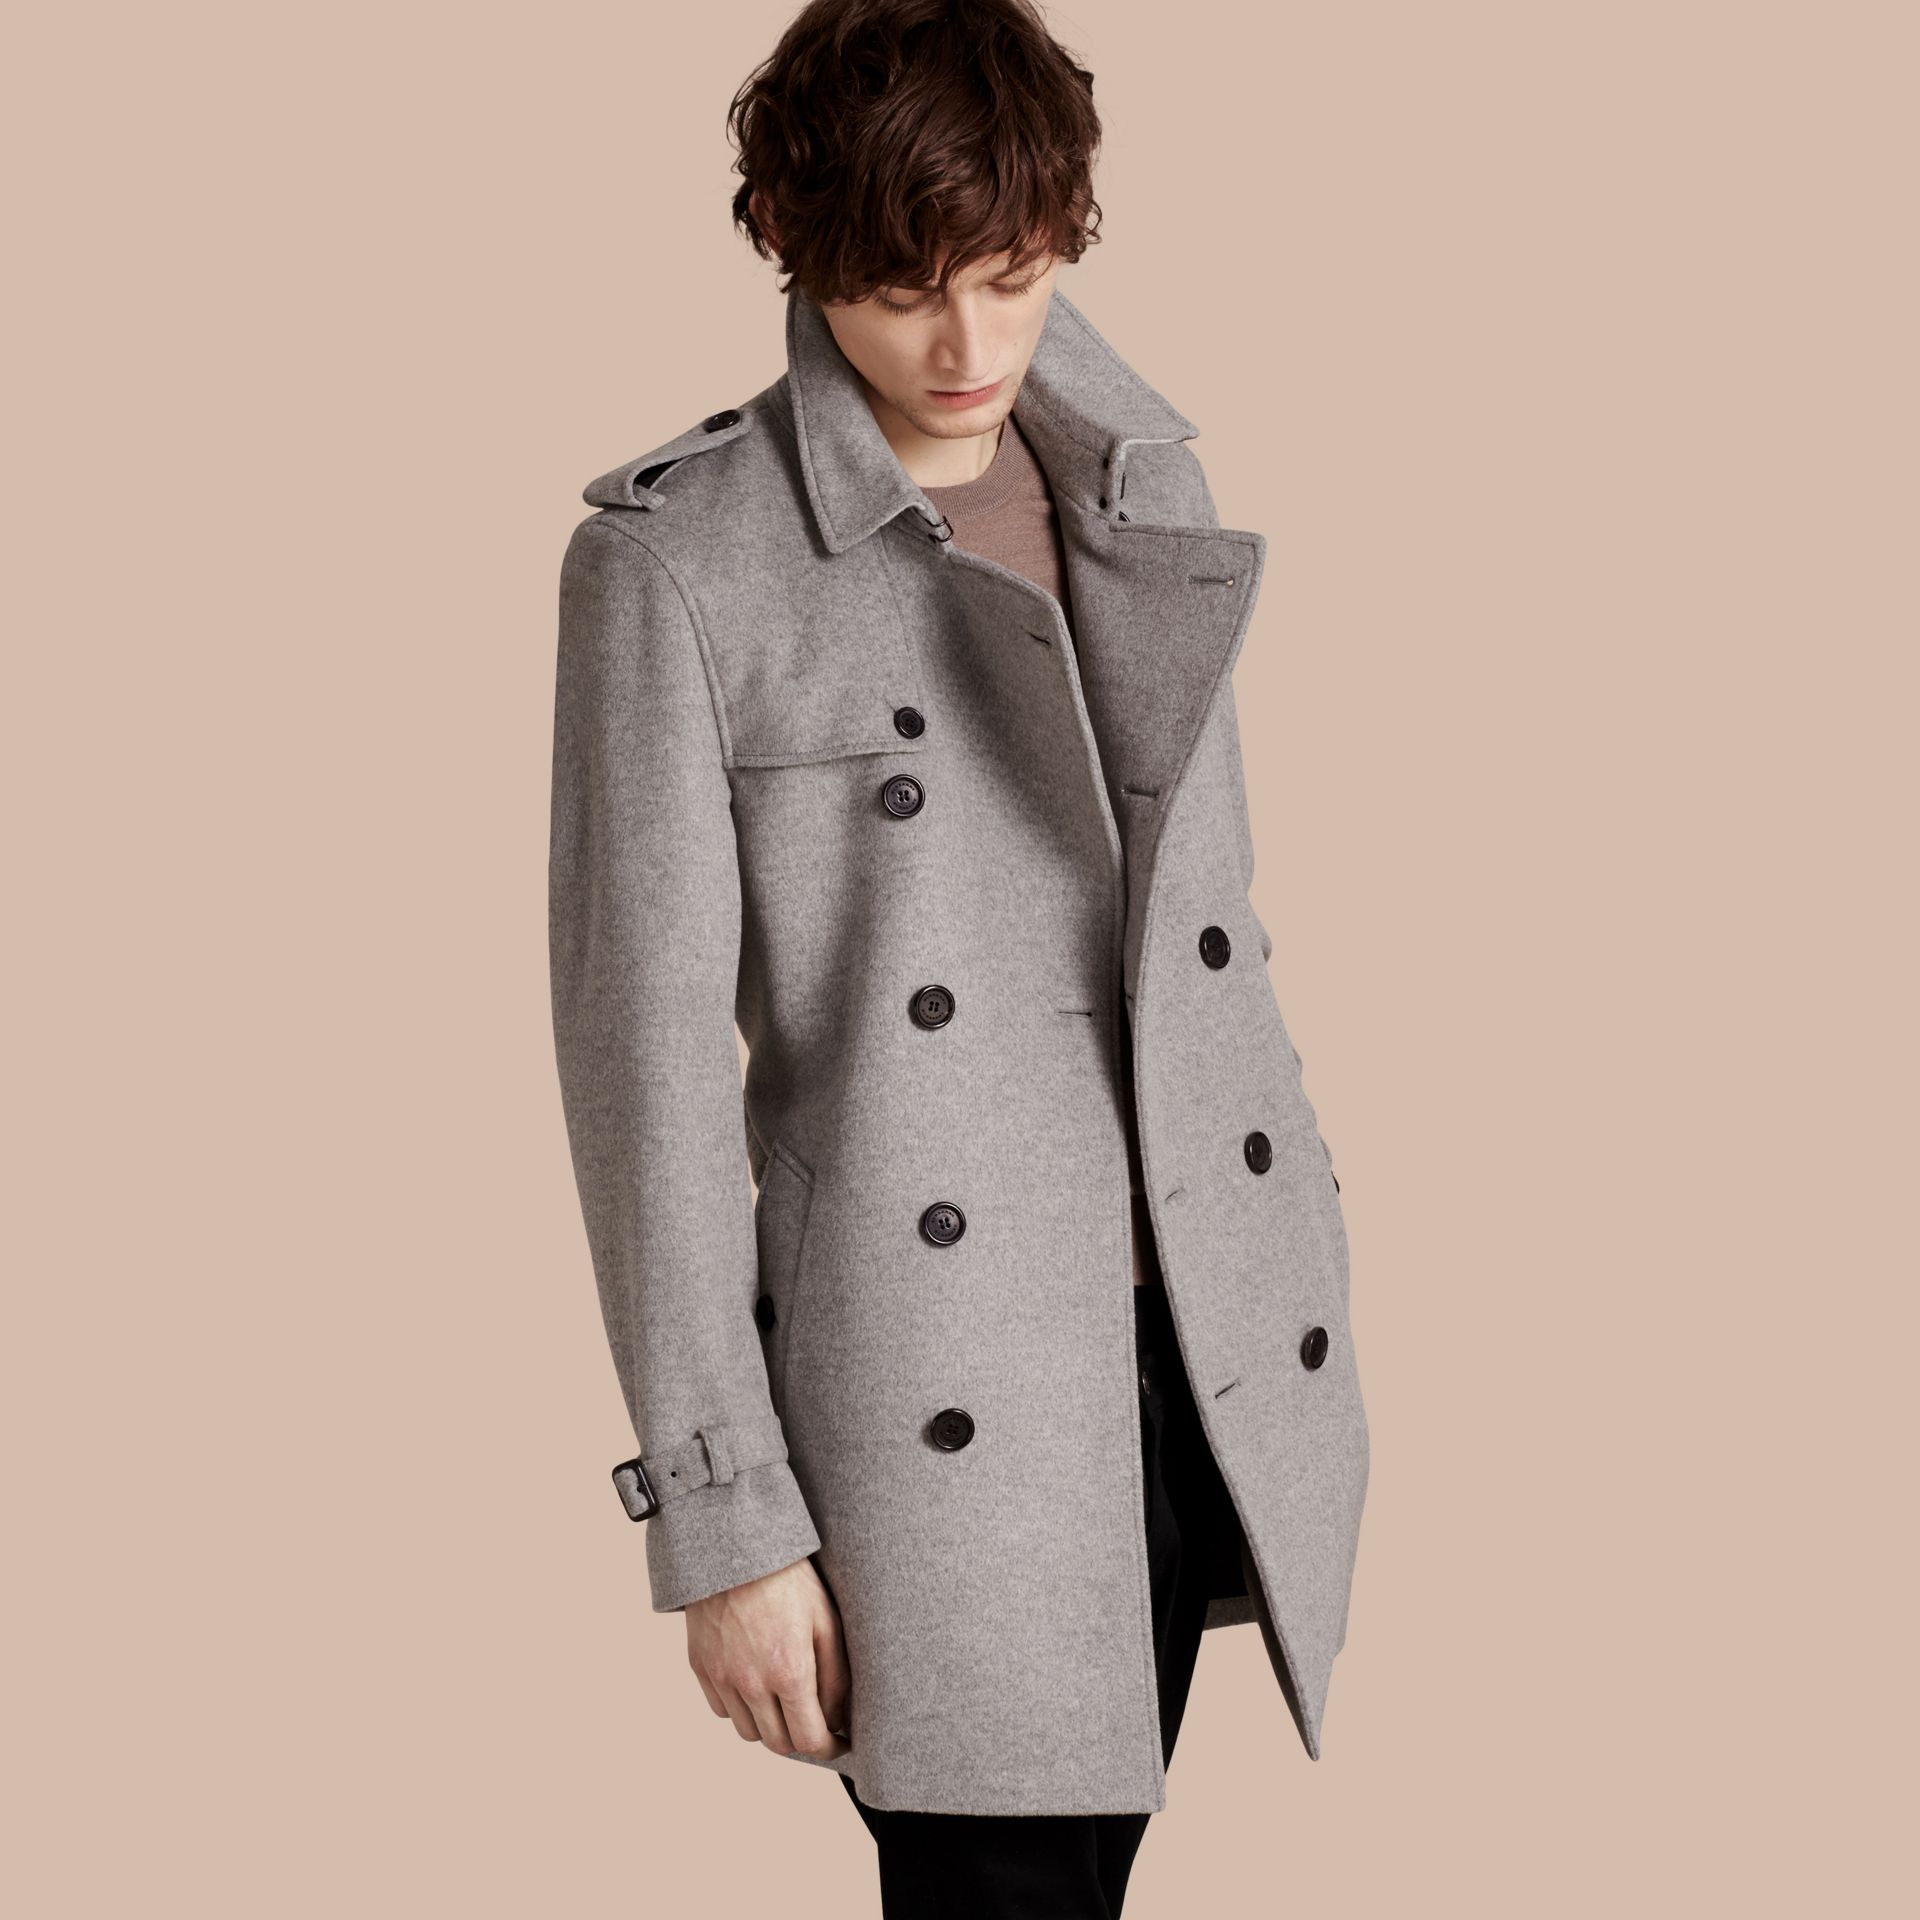 Pale grey melange Wool Cashmere Trench Coat Pale Grey Melange - gallery image 1